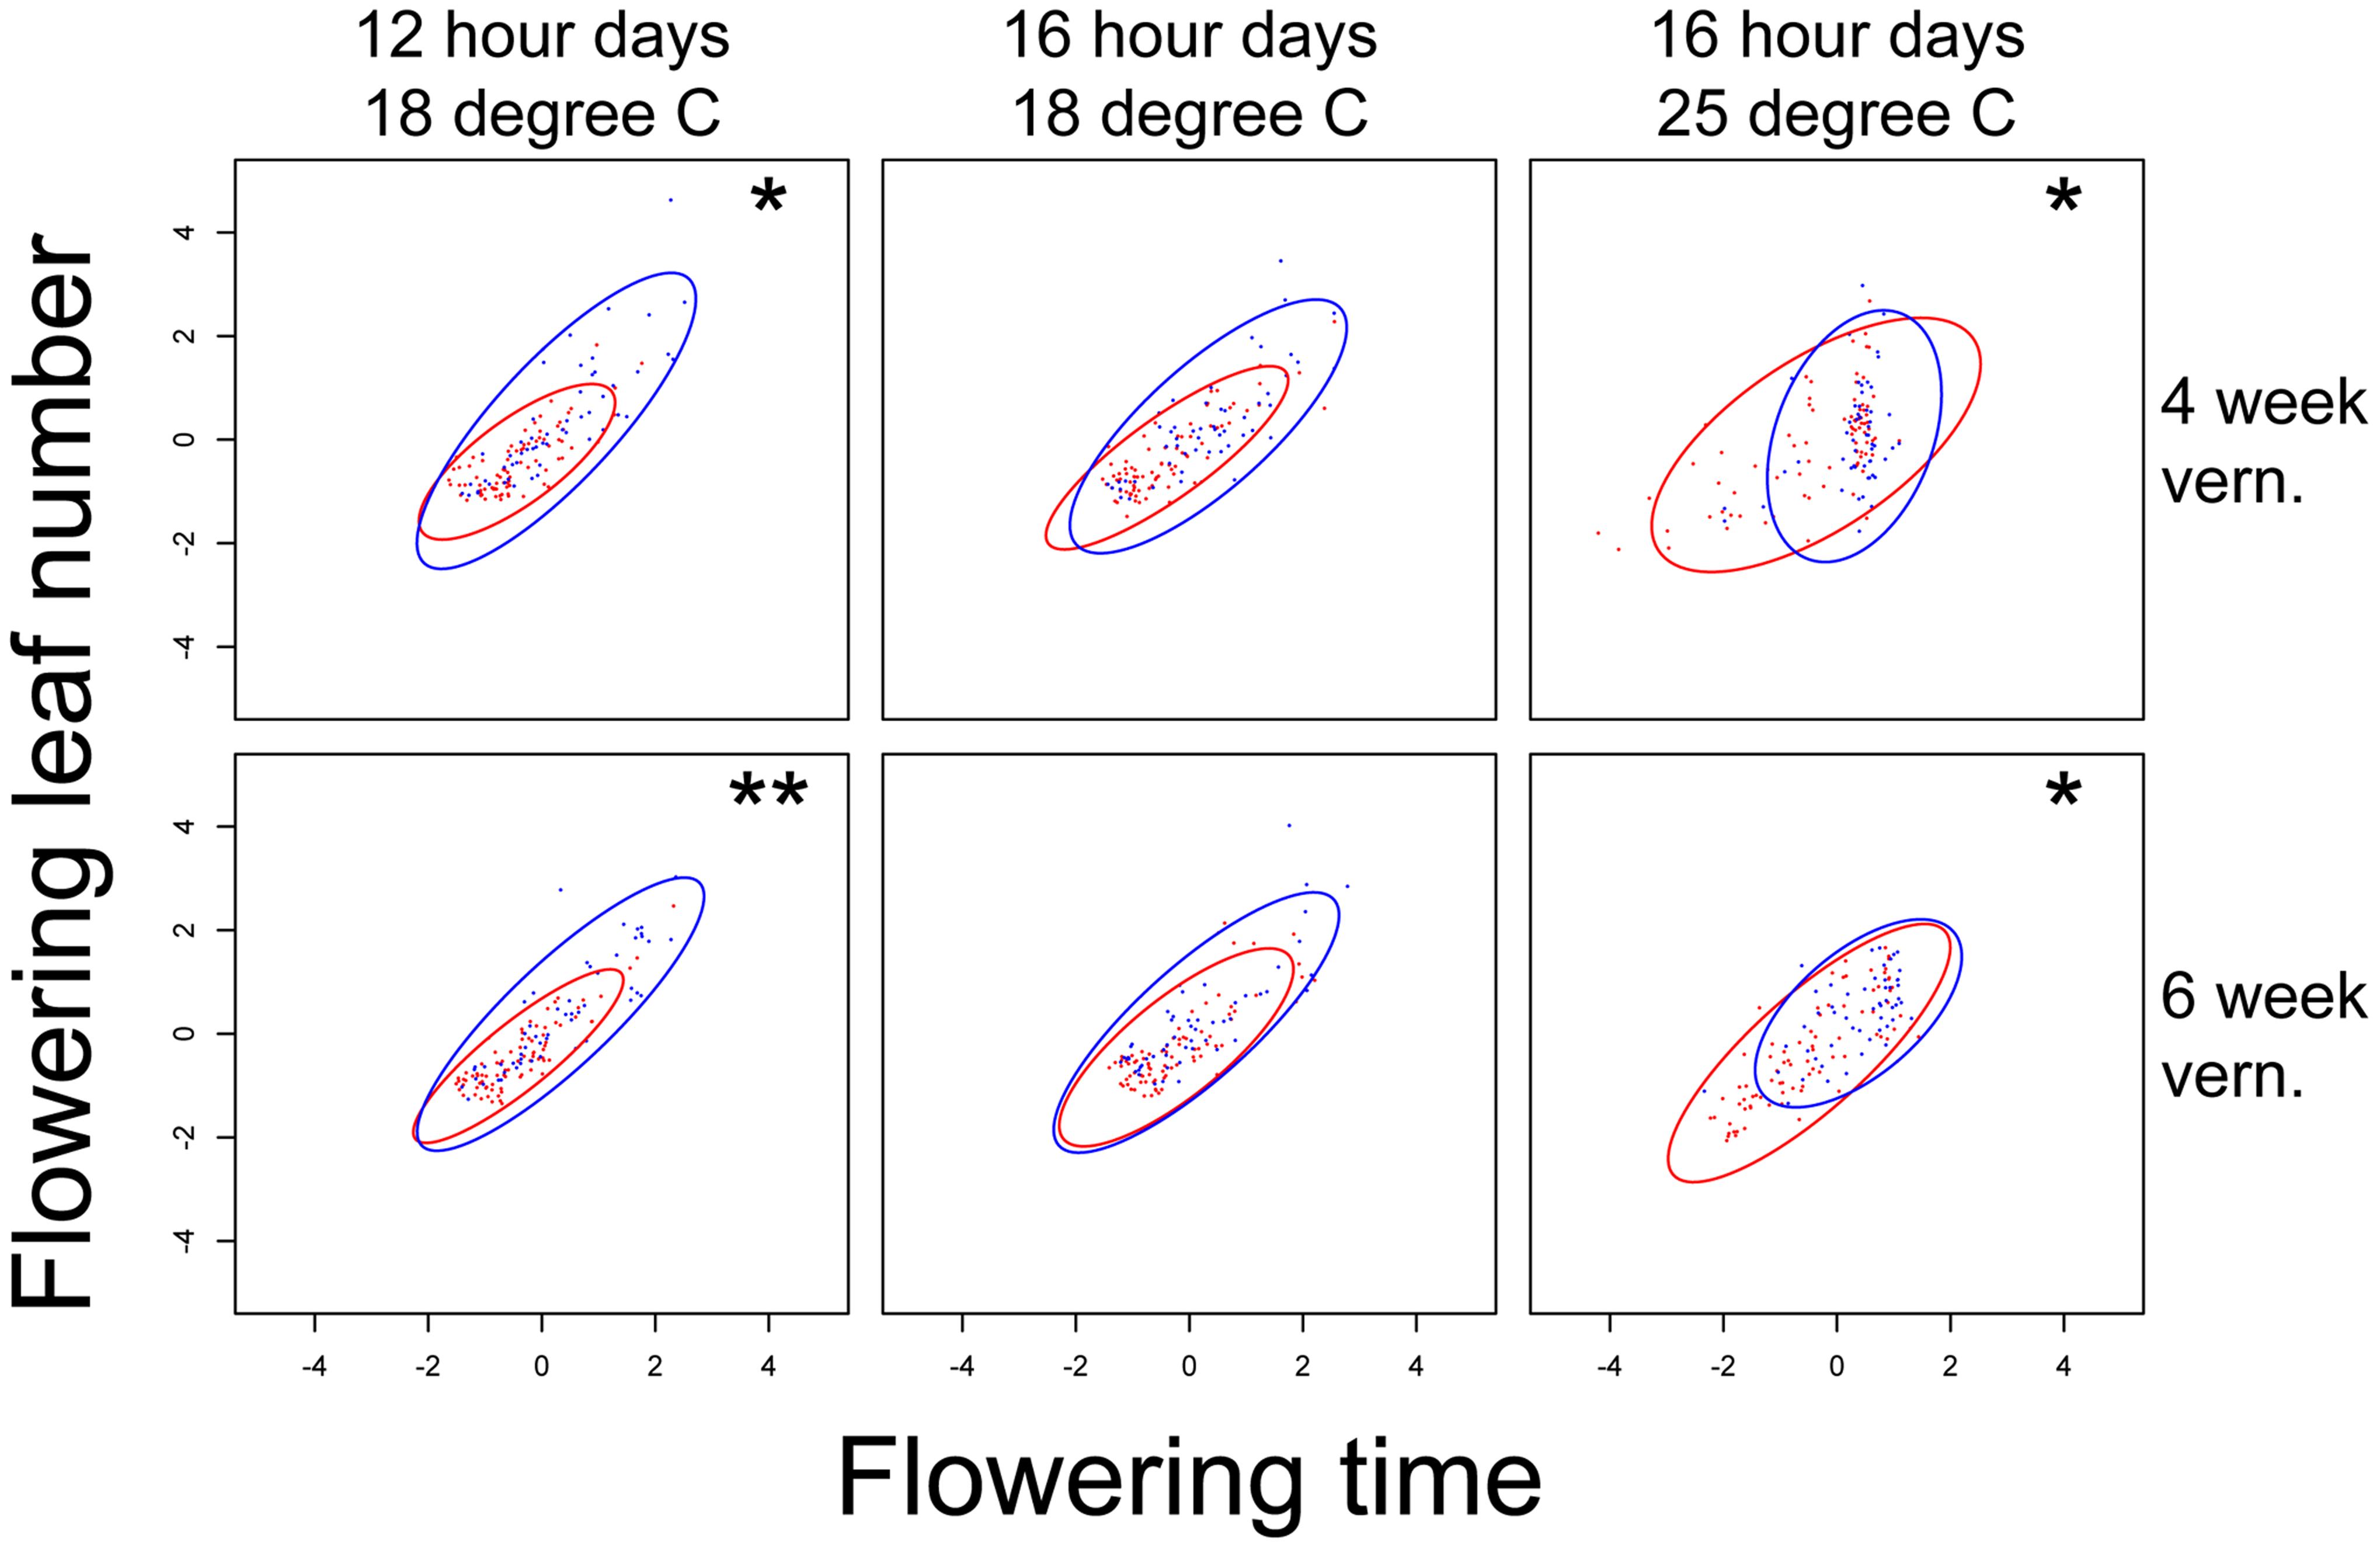 <i>nFT</i> effect on the structure of covariance between standardized flowering time and leaf number when flowering in each of the six environments.